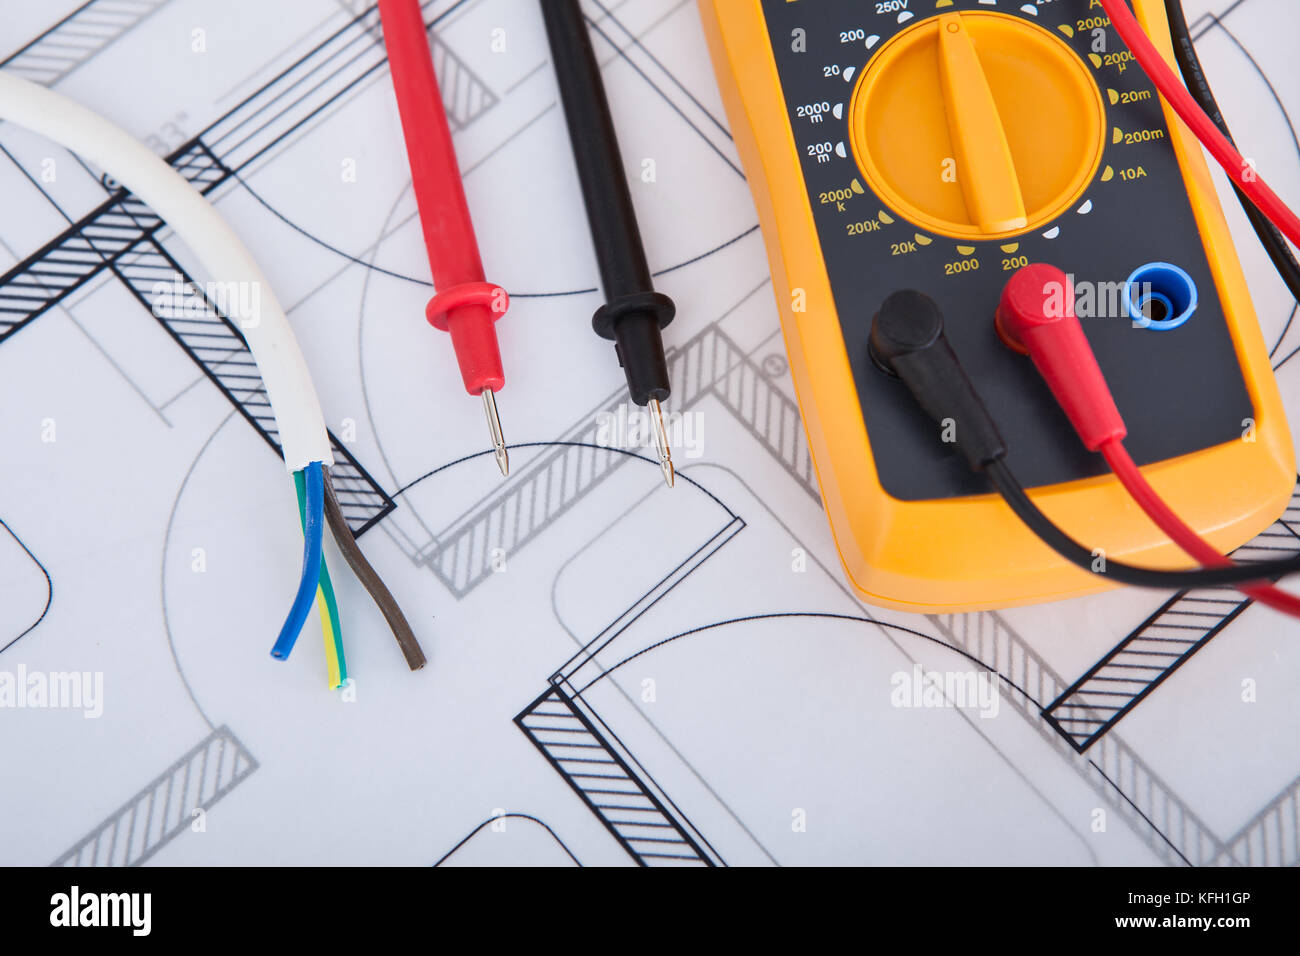 Closeup of multimeter with wires on blueprint - Stock Image